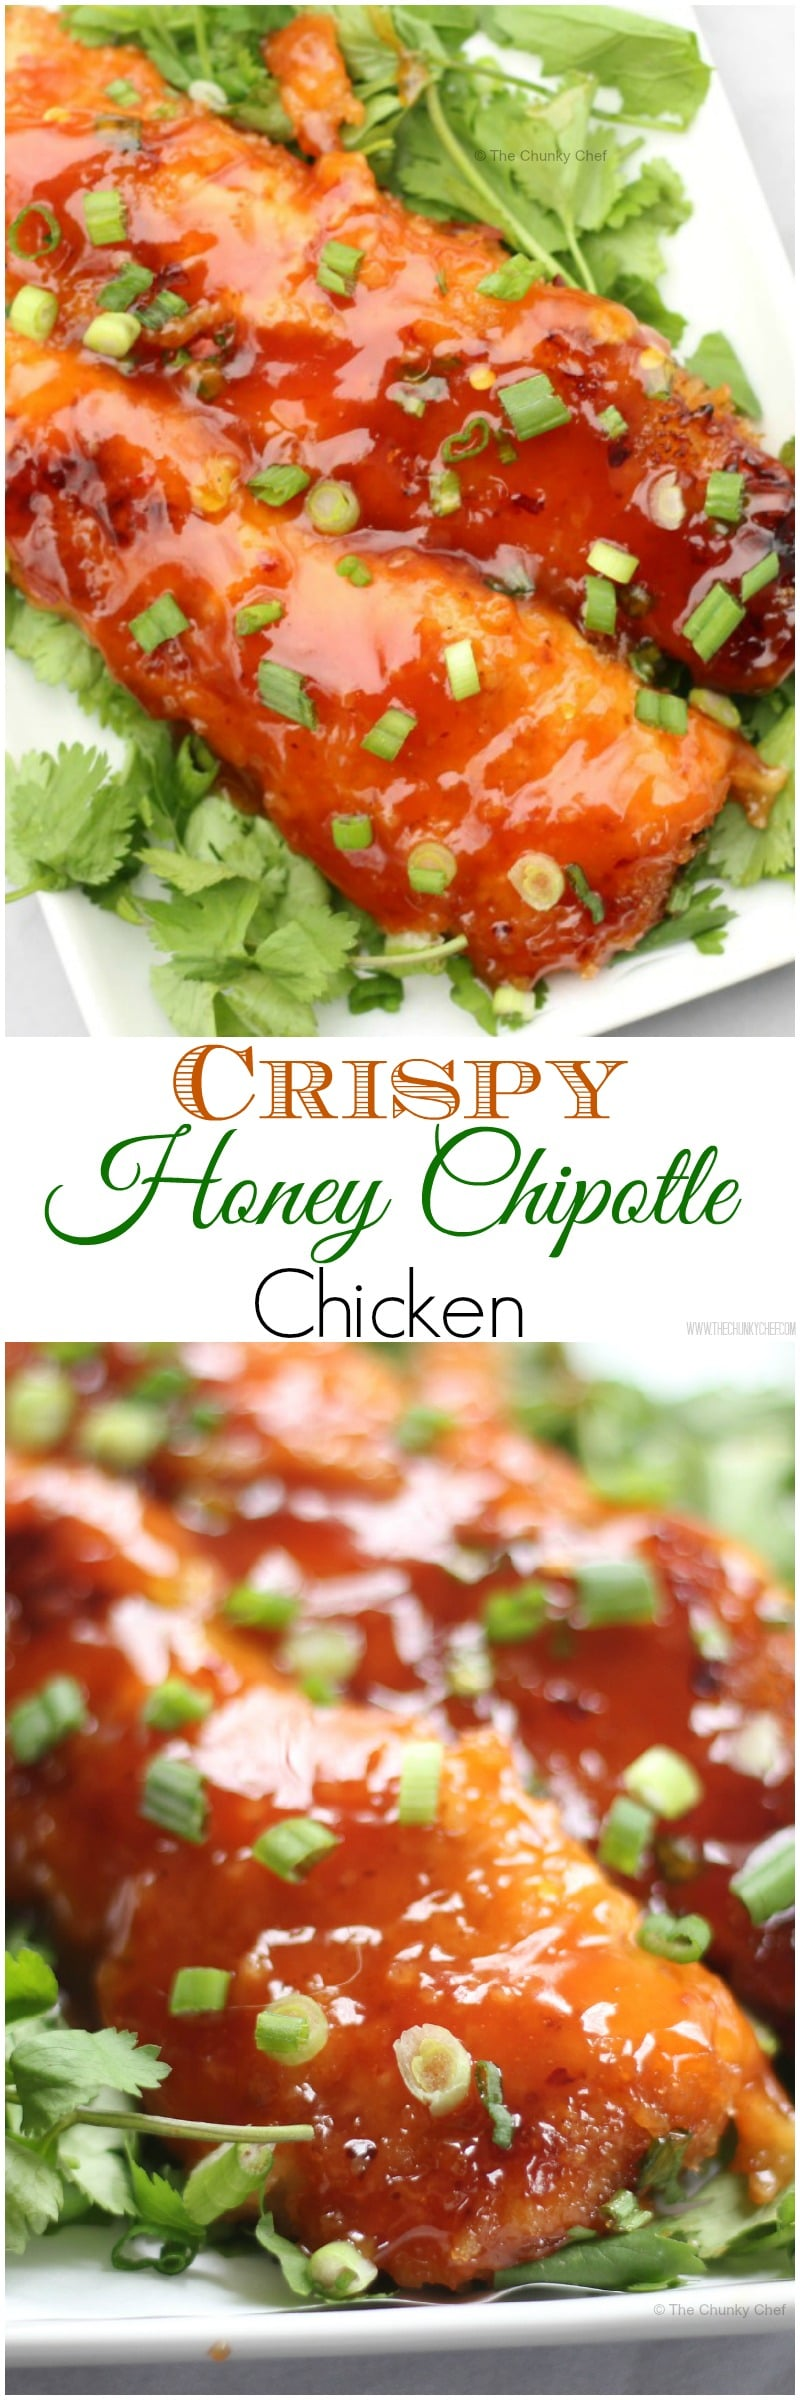 rispy chicken fingers tossed in a sweet and spicy sauce.